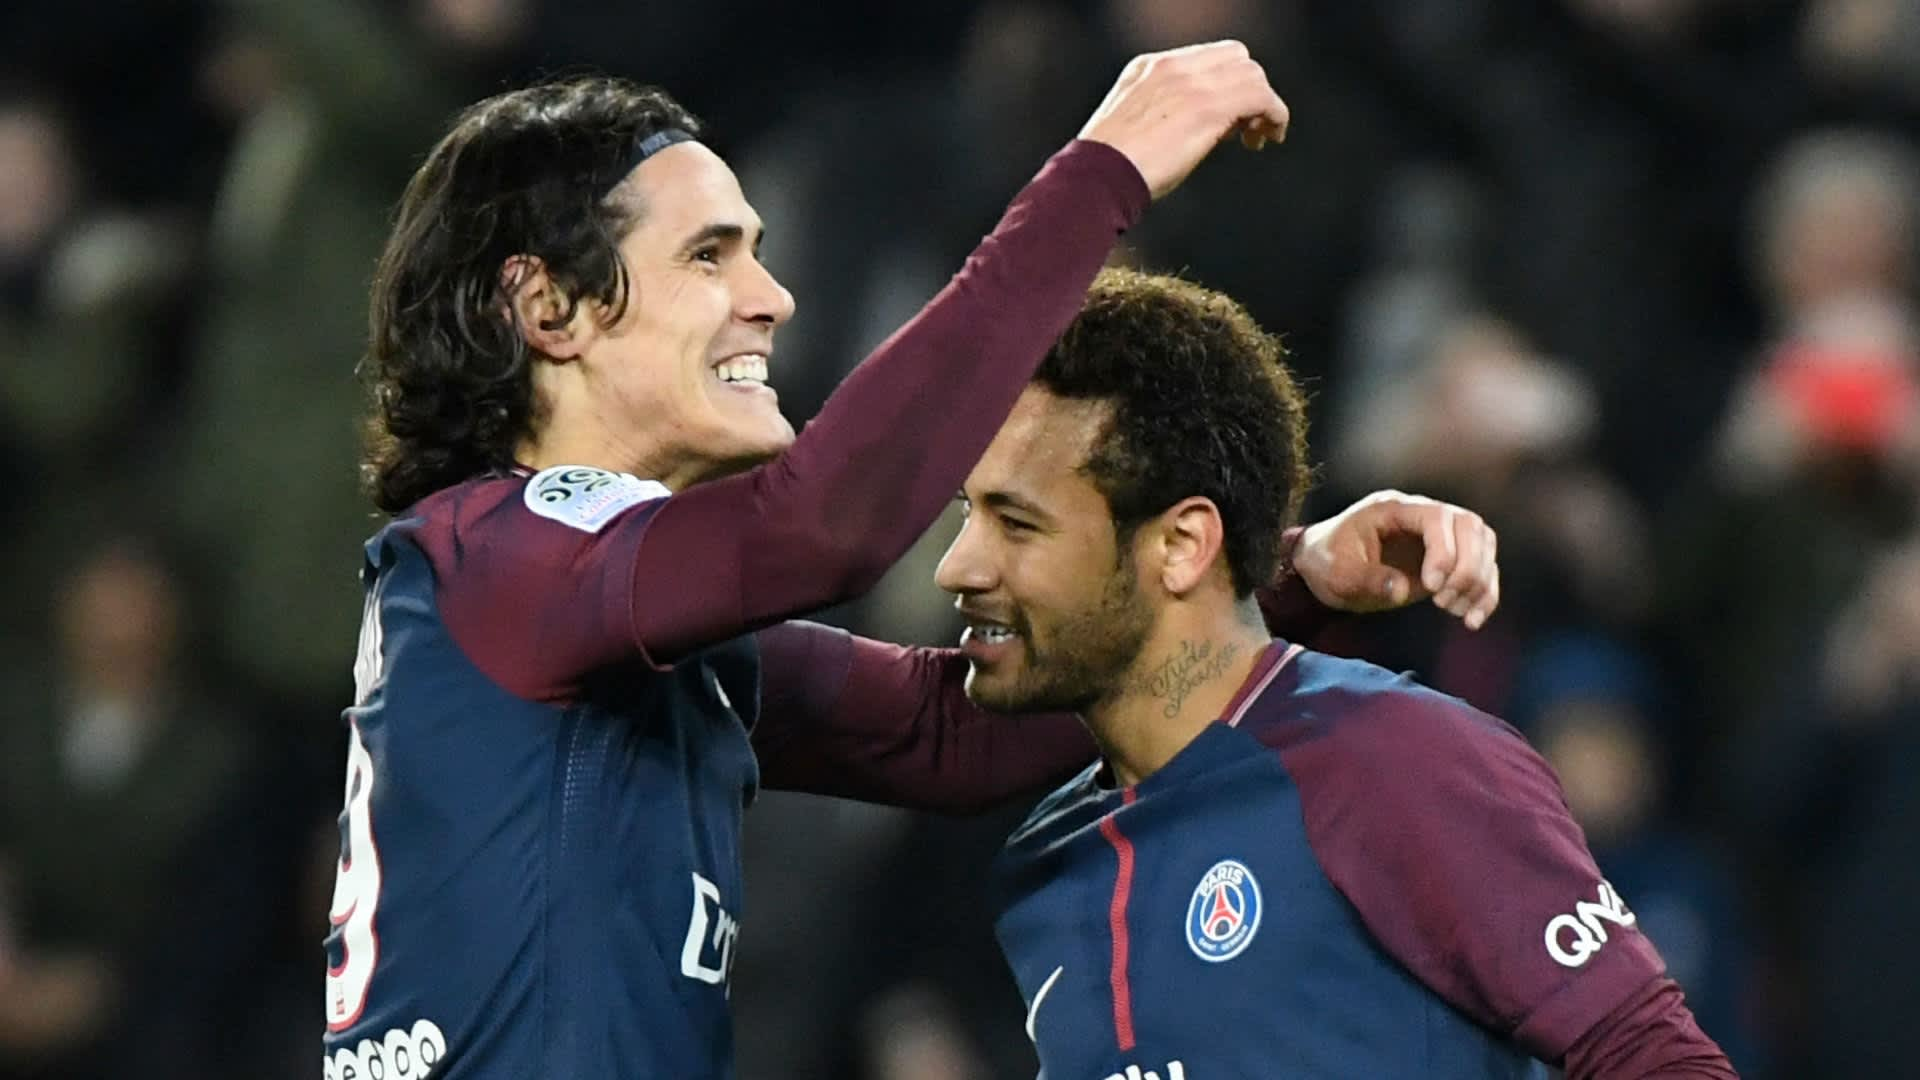 Edinson Cavani and Neymar score for PSG in Ligue 1 derby against As Monaco